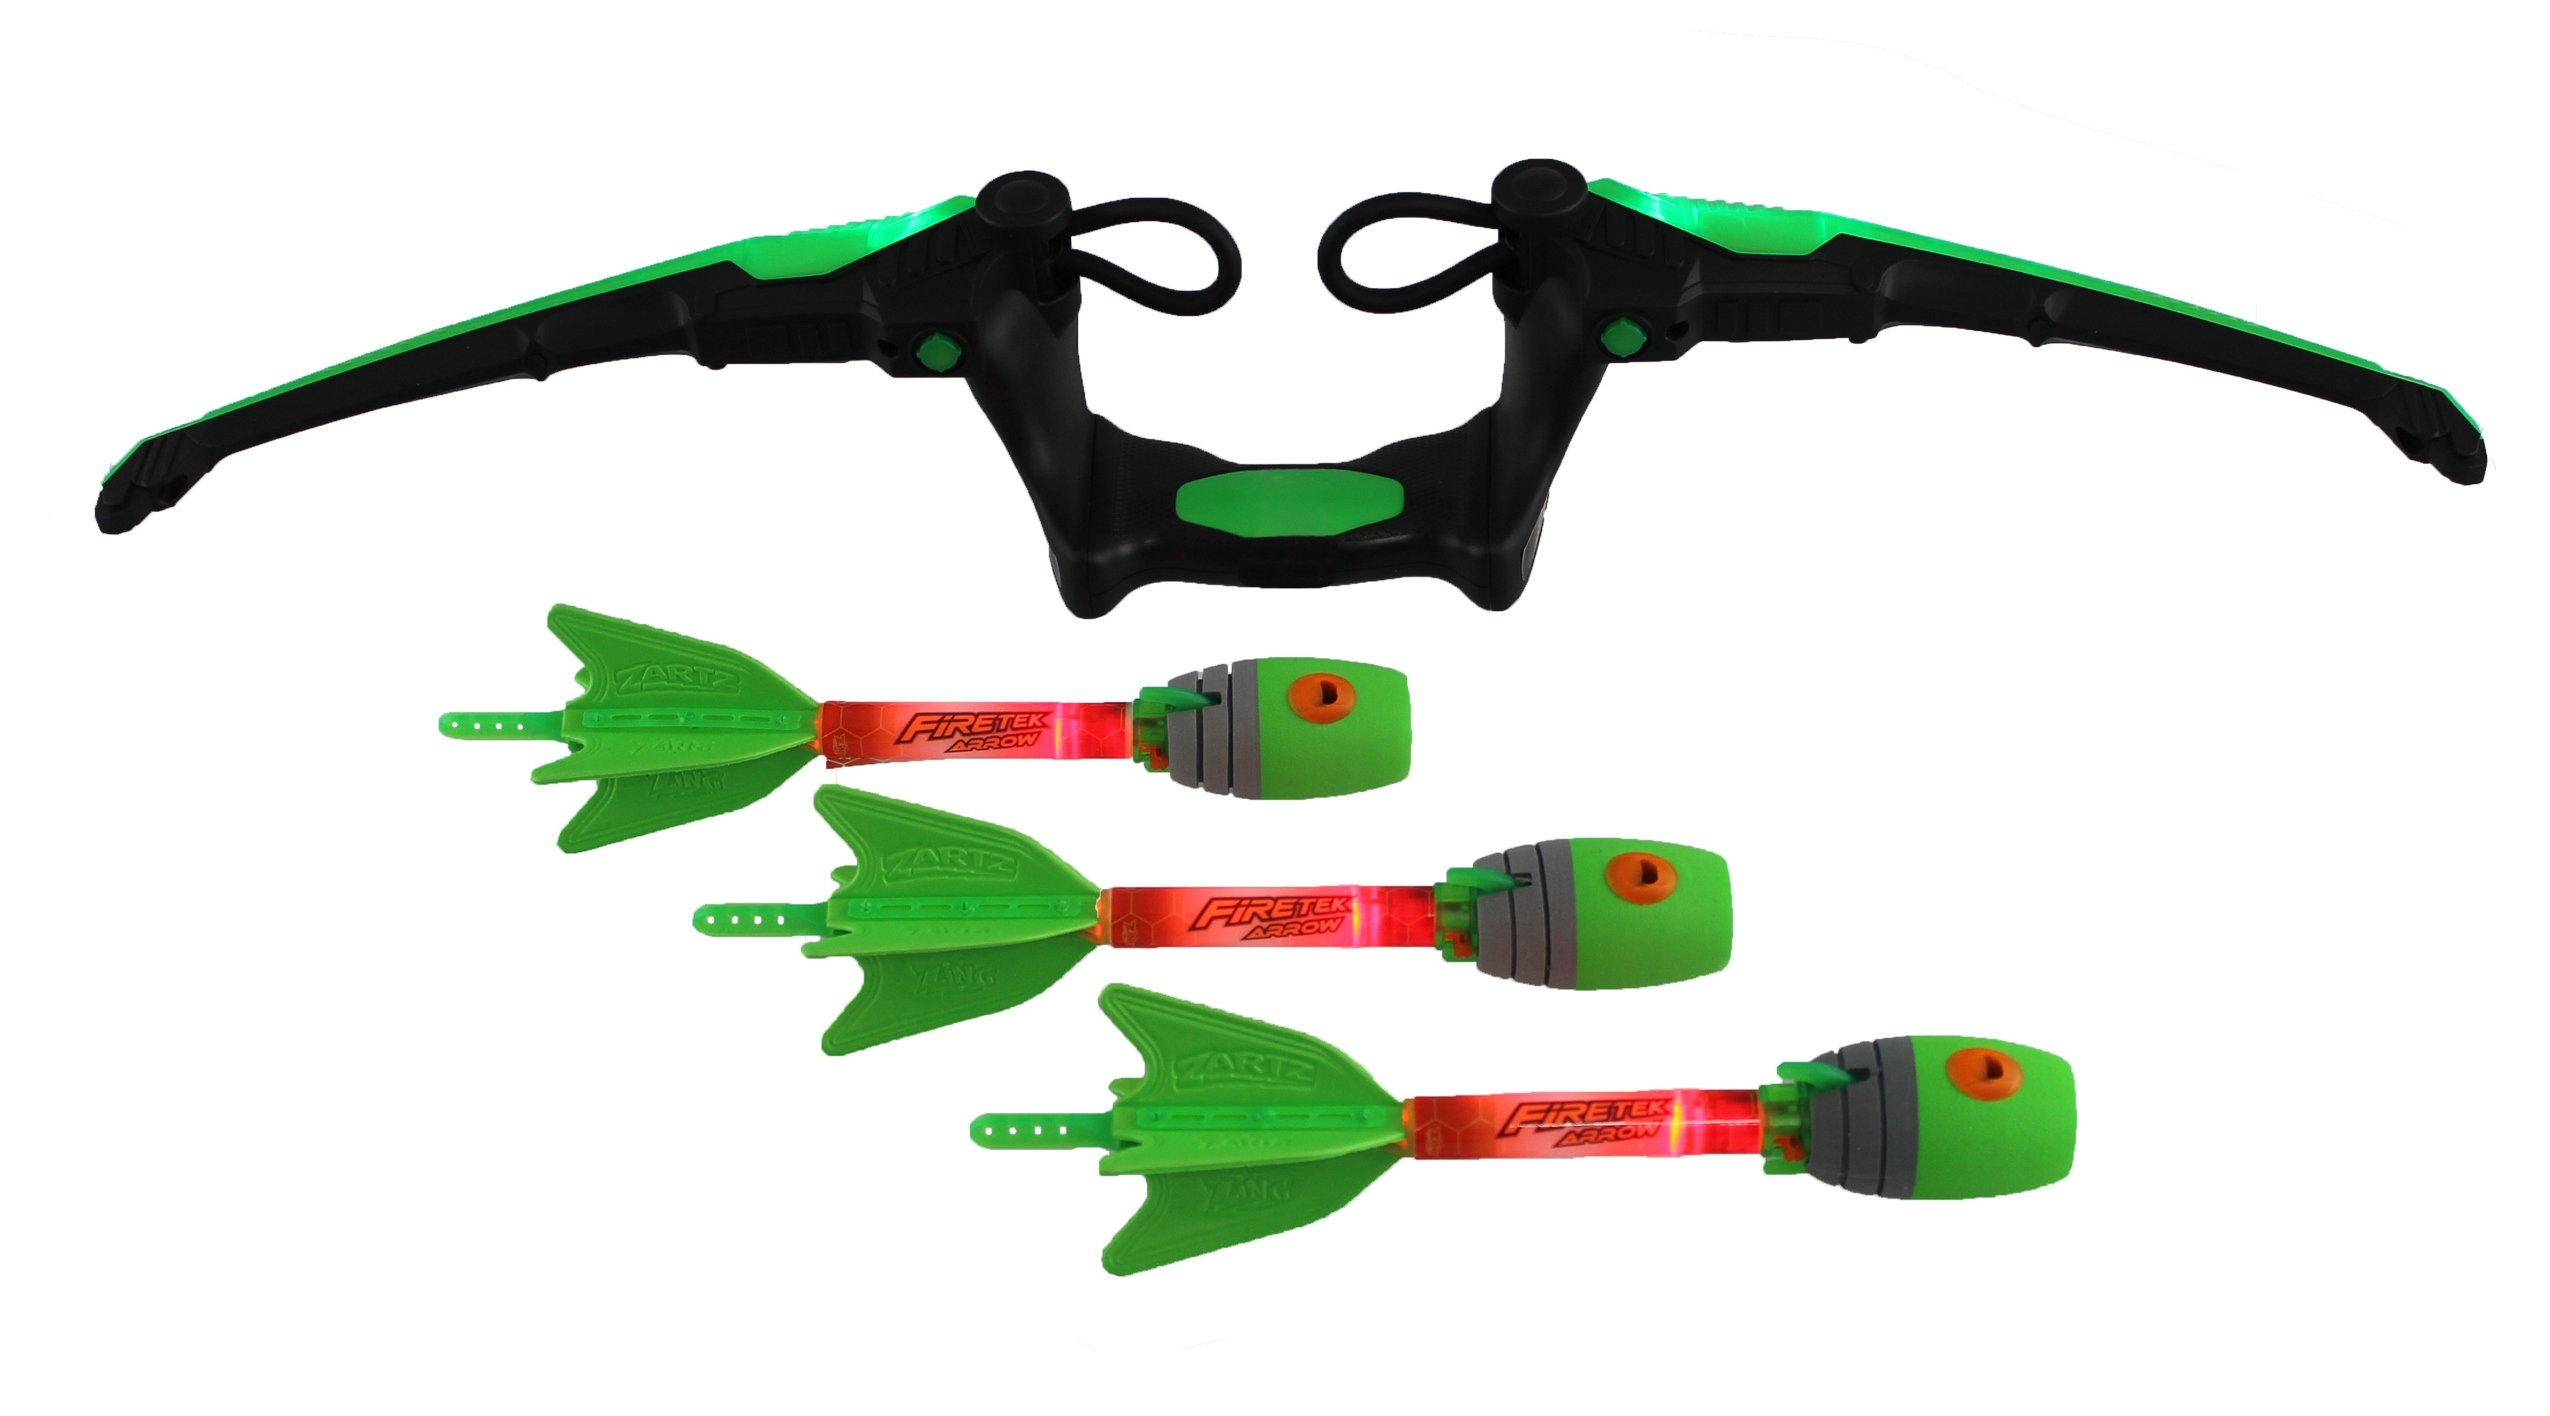 Up to 40% off Select Zing Bow Toys